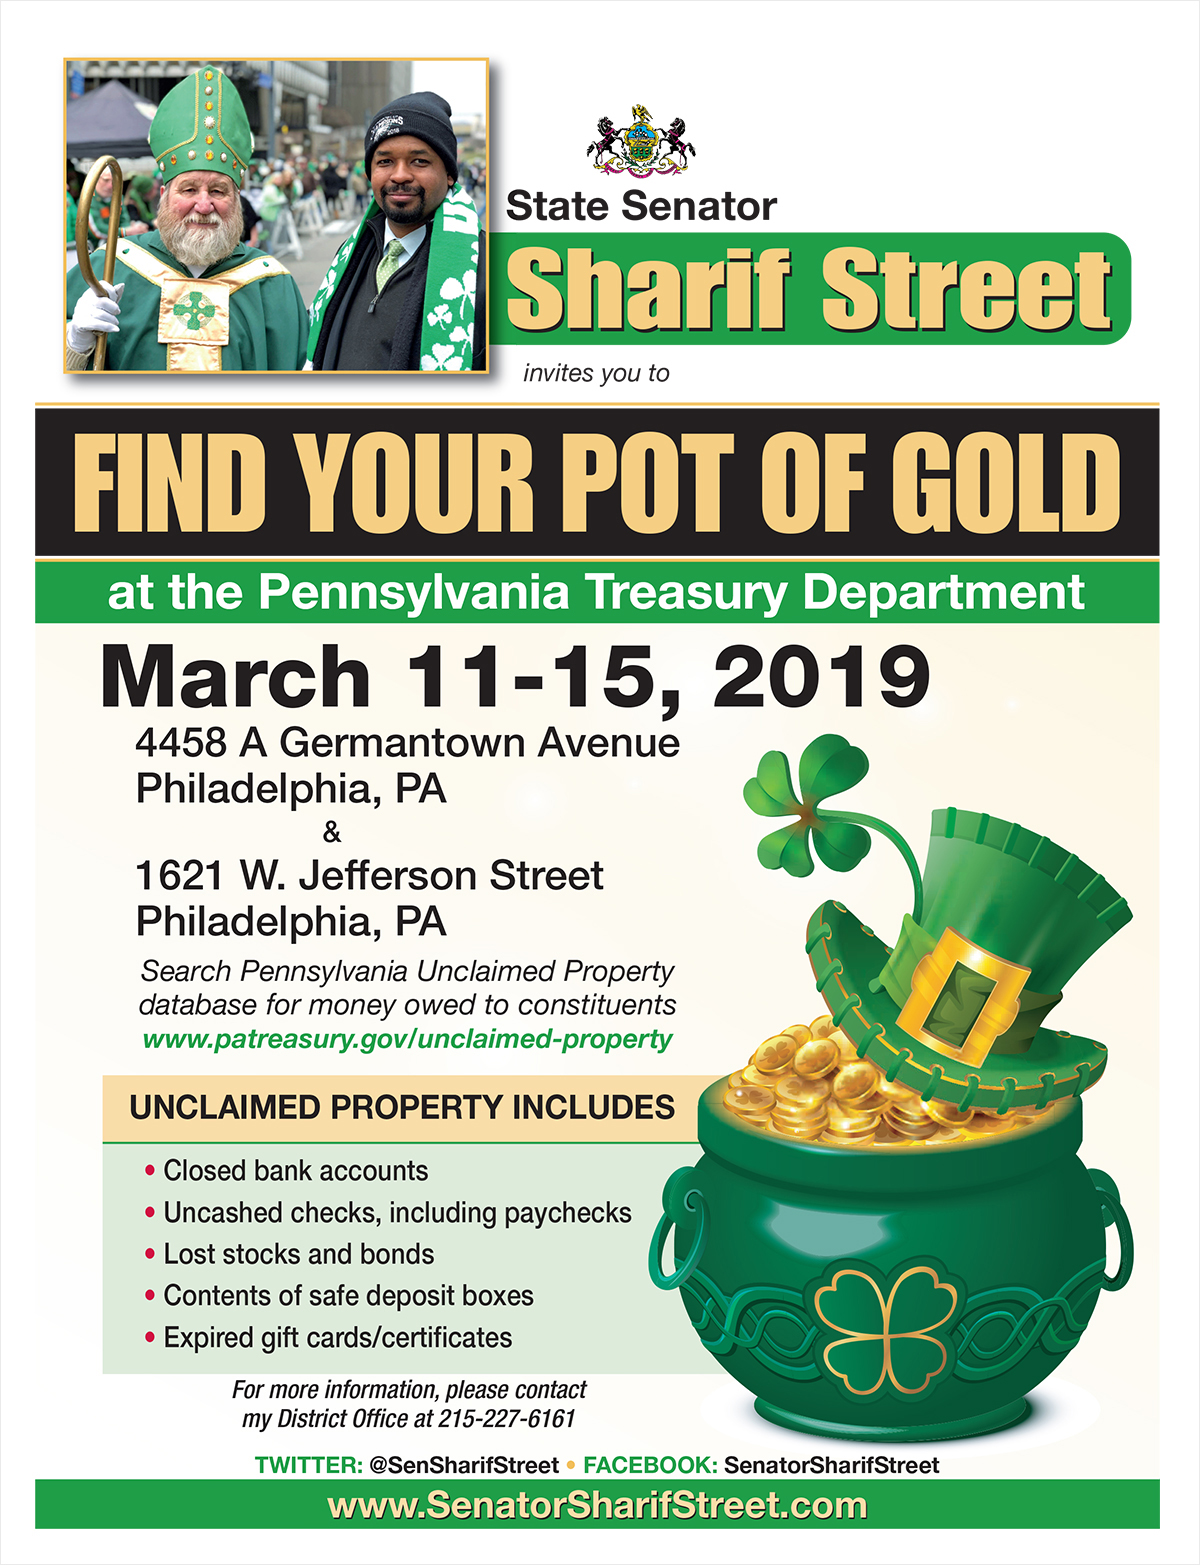 Find Your Pot of Gold - March 11-15